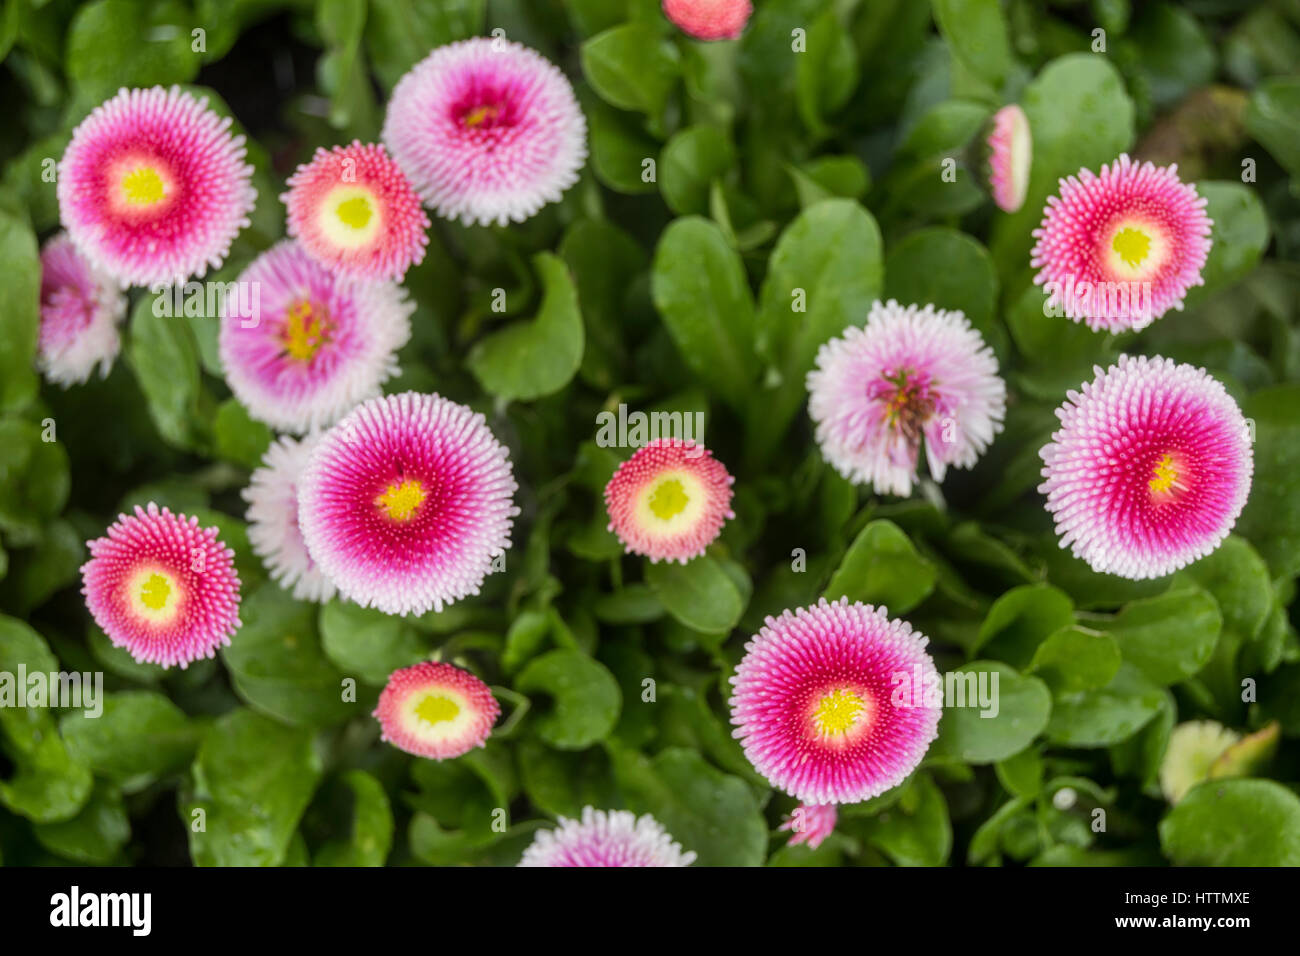 Bright pink flower with yellow centre stock photos bright pink pink white and yellow spring flowers stock image mightylinksfo